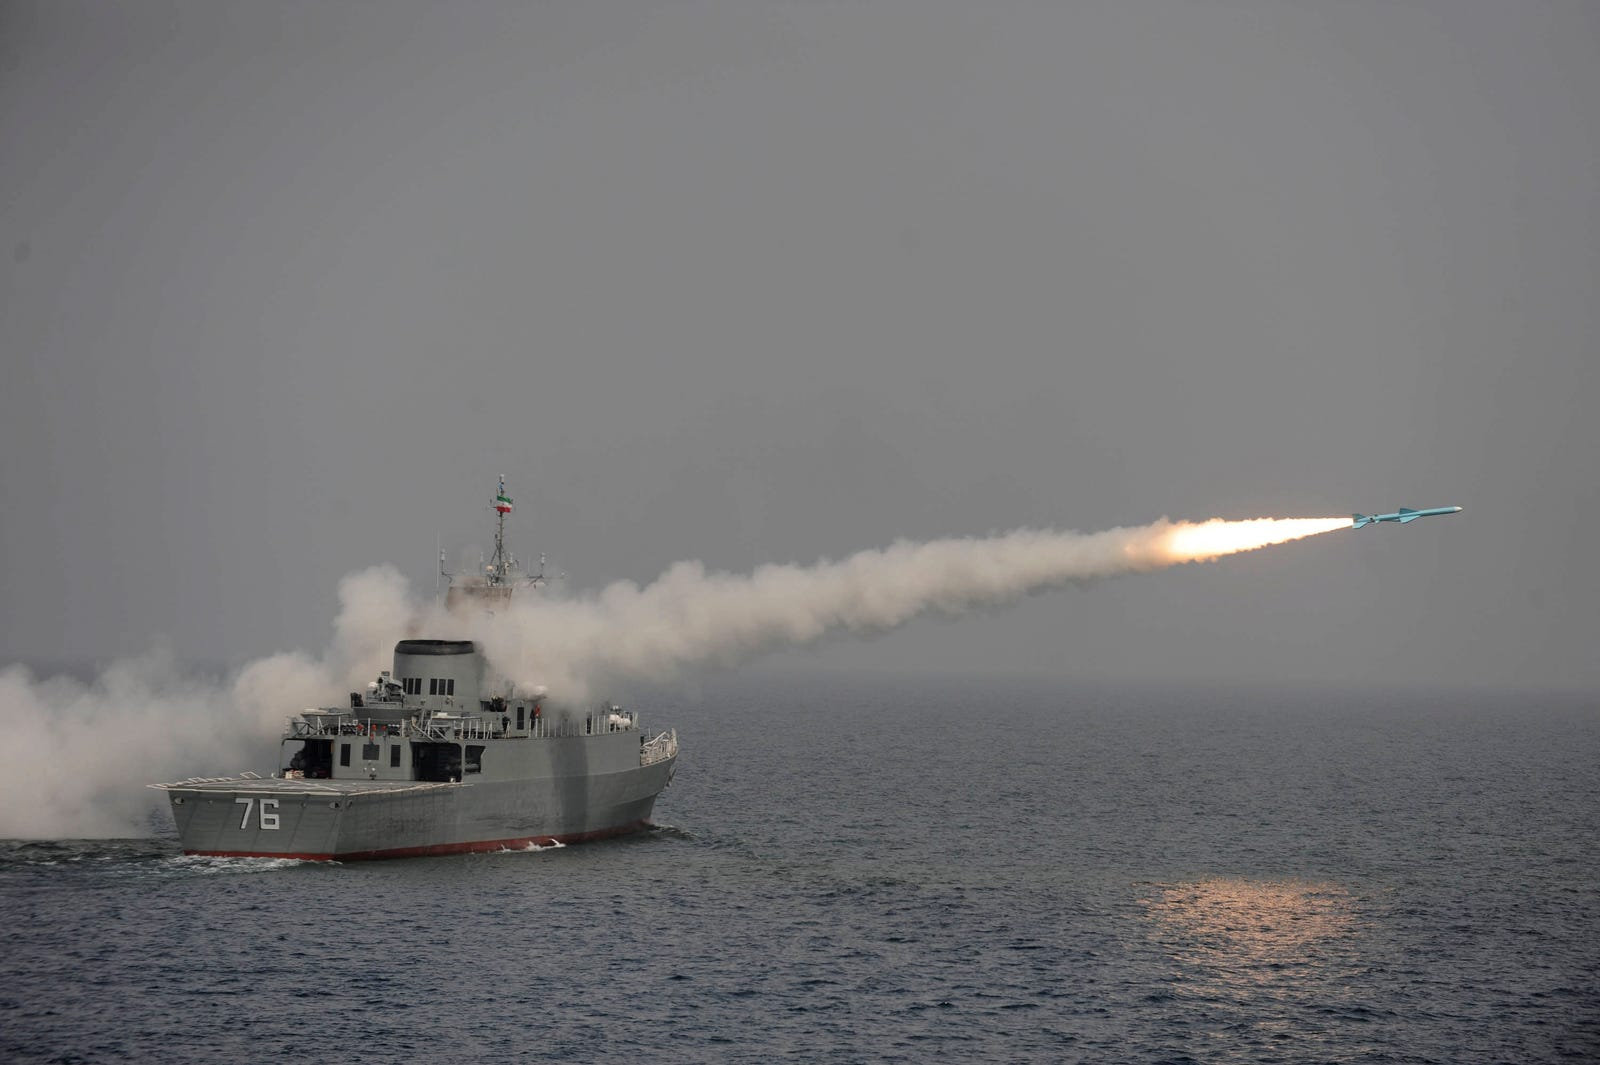 File photo of the Jamaran firing a missile, reported to be a Noor, a long-range anti-ship missile manufactured by Iran and based on the Chinese C-802, in an exercise in the southern waters of Iran, Tuesday, March 9, 2010.